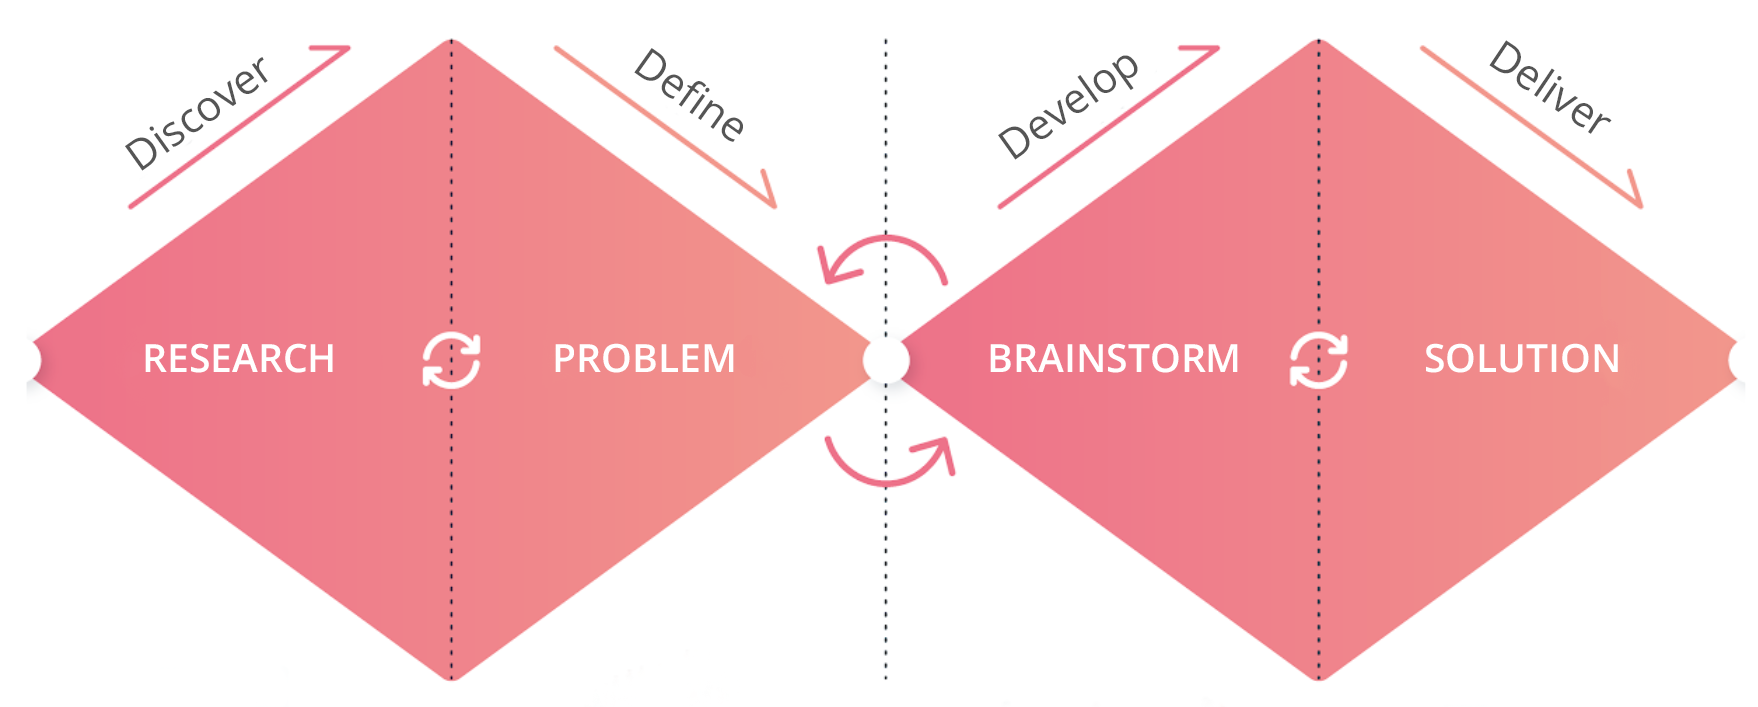 4 steps of design thinking method